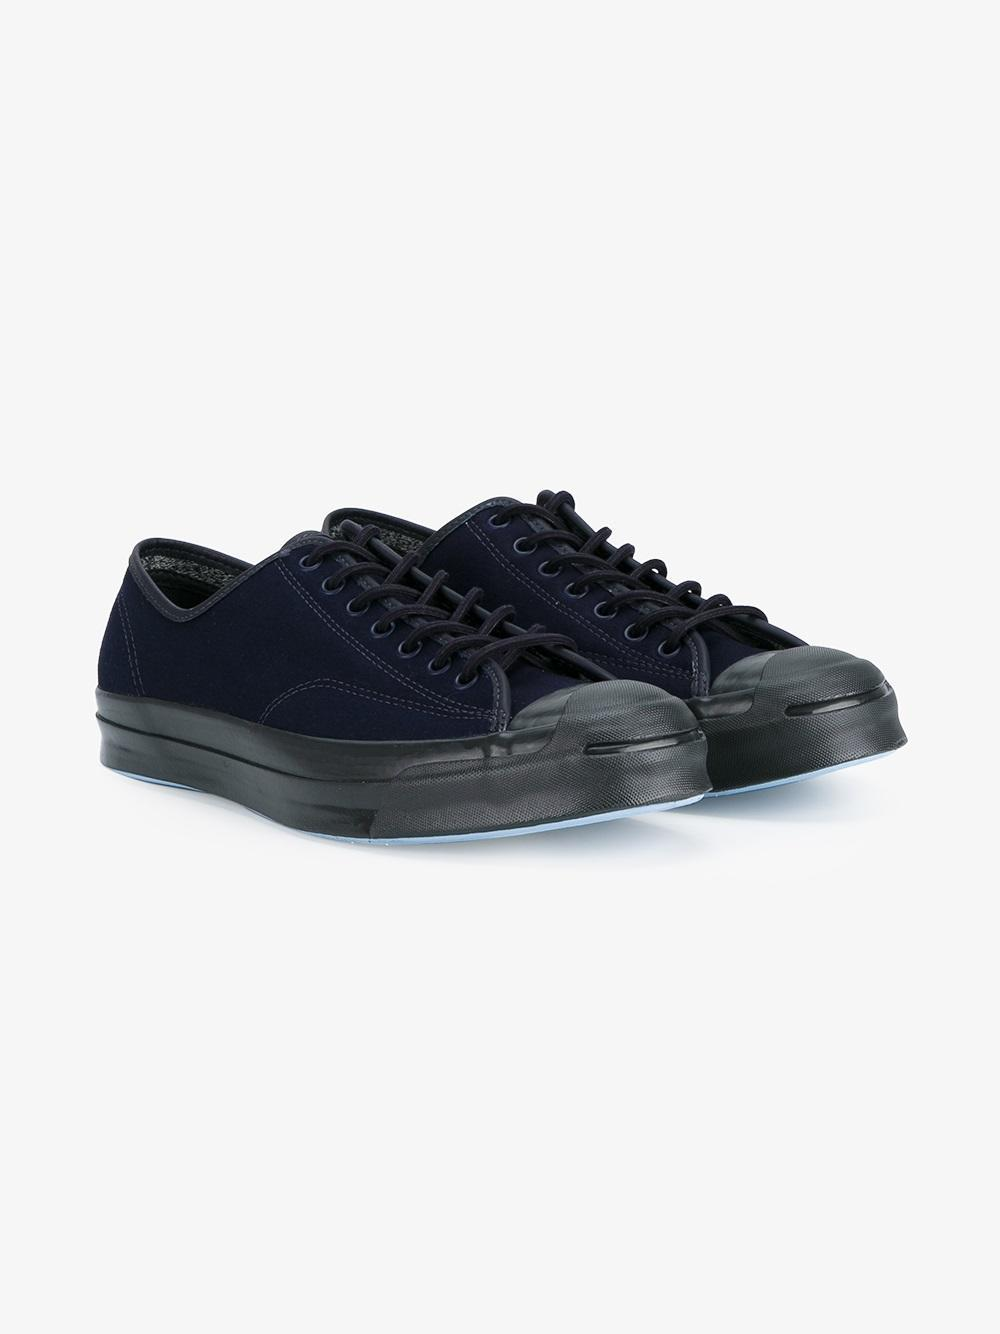 97f5e4ecd2d5 Lyst - Converse Jack Purcell M-series Shield Canvas Sneakers in ...